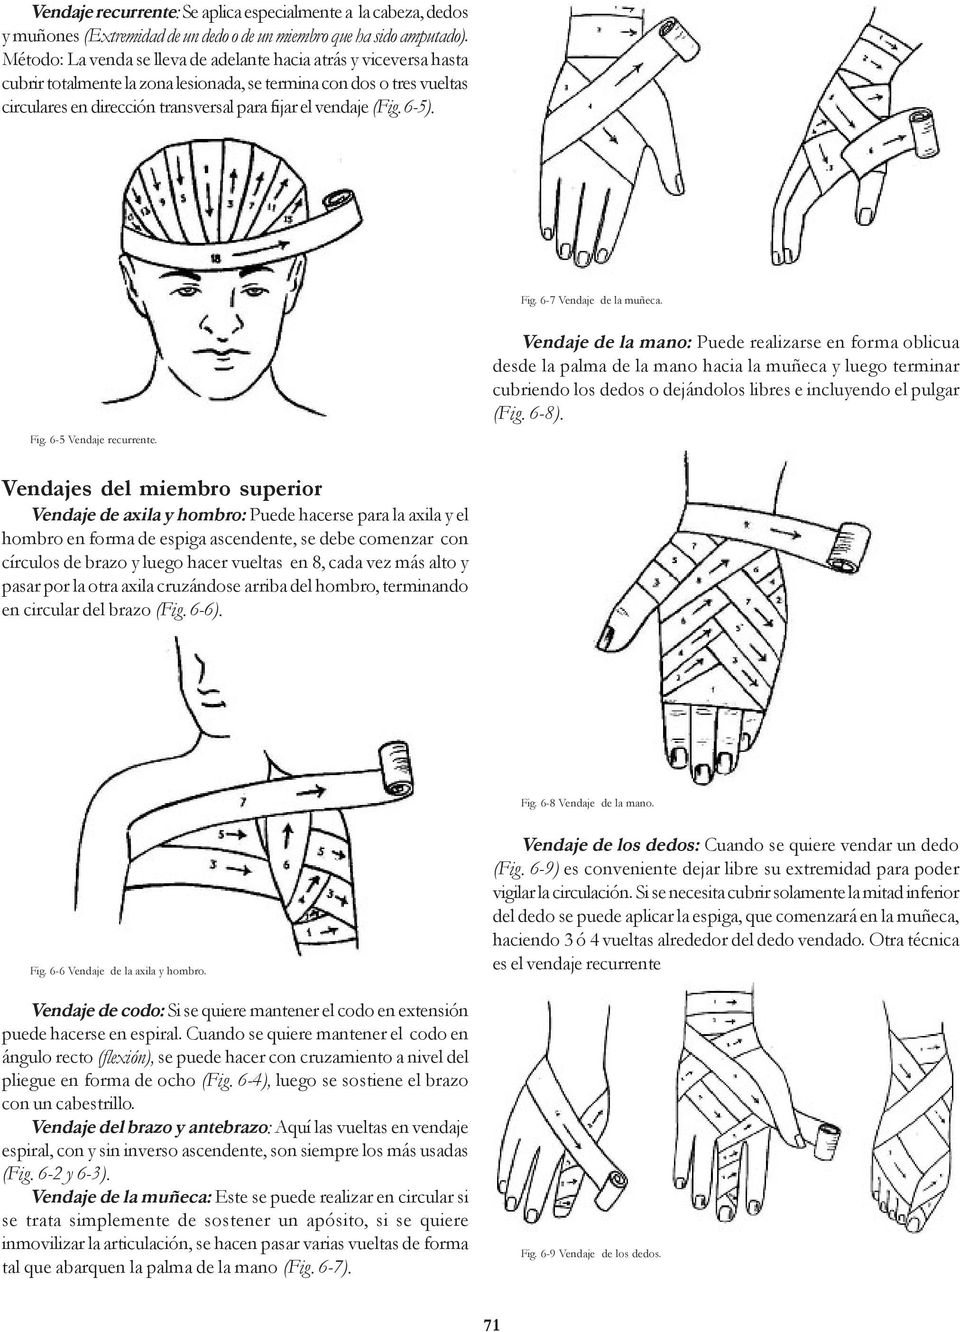 (Fig. 6-5). Fig. 6-7 Vendaje de la muñeca. Fig. 6-5 Vendaje recurrente.